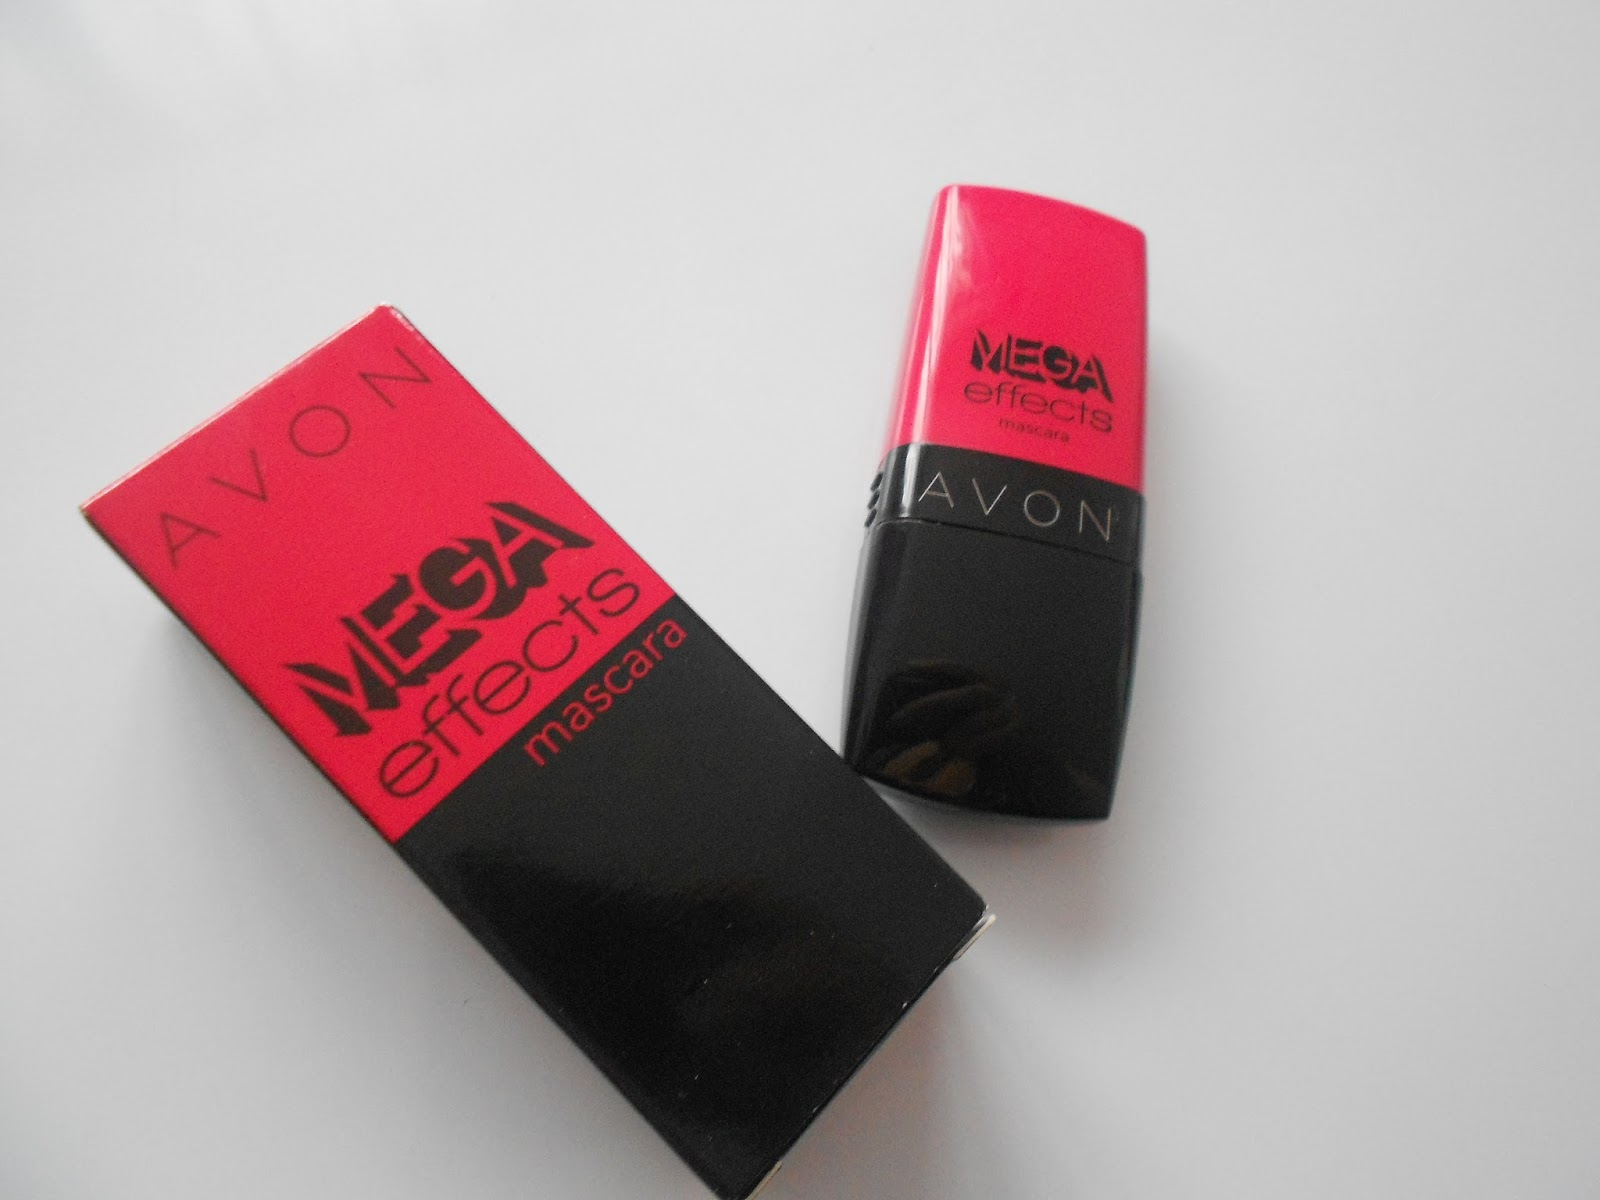 avon mega effects mascara new